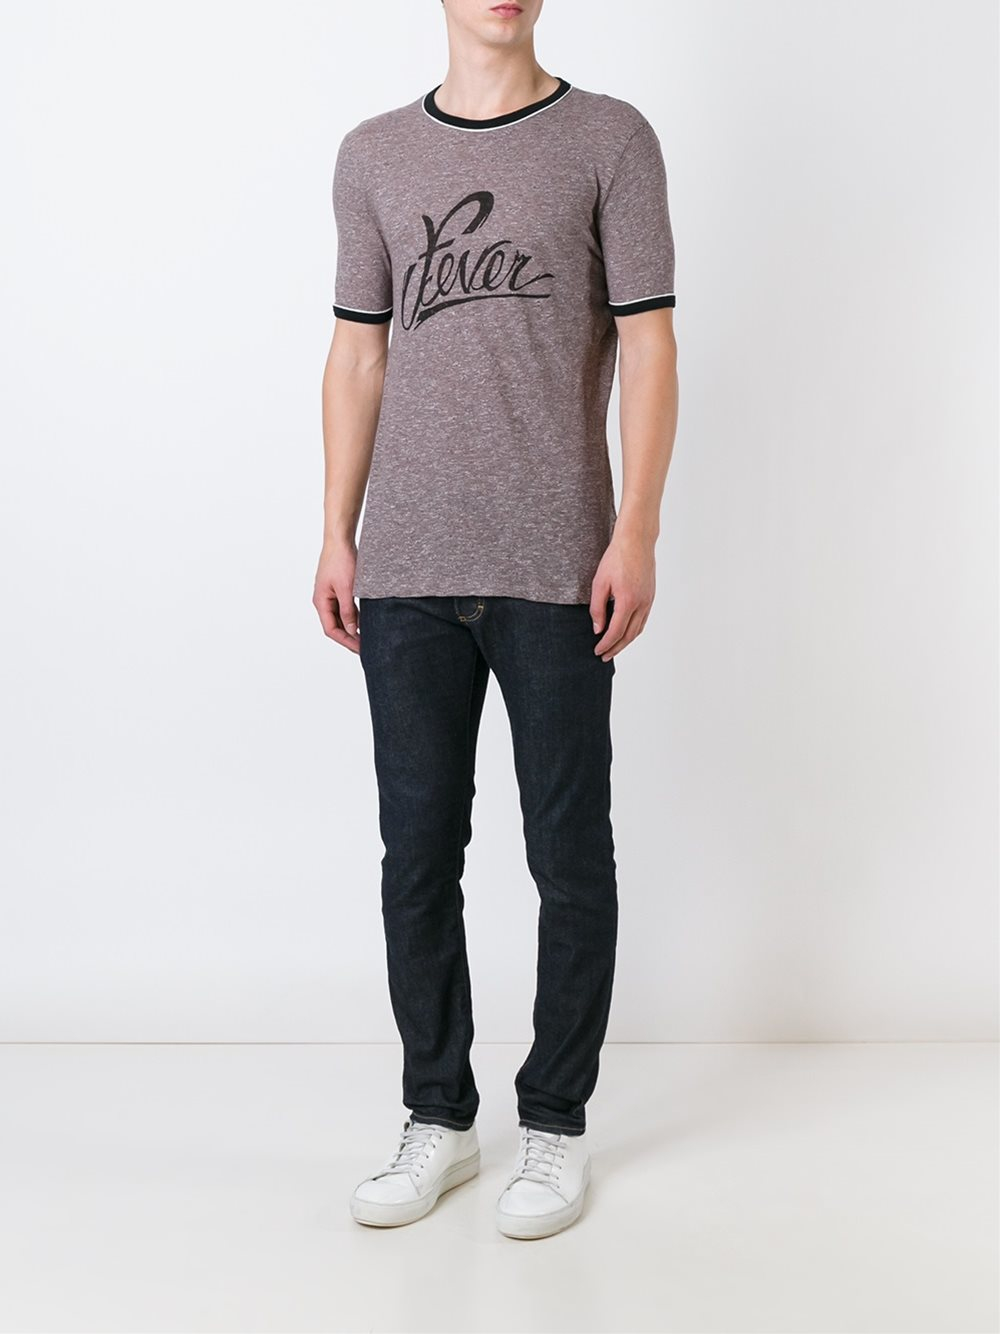 Lyst - Marc jacobs Fever Print T-shirt in Brown for Men